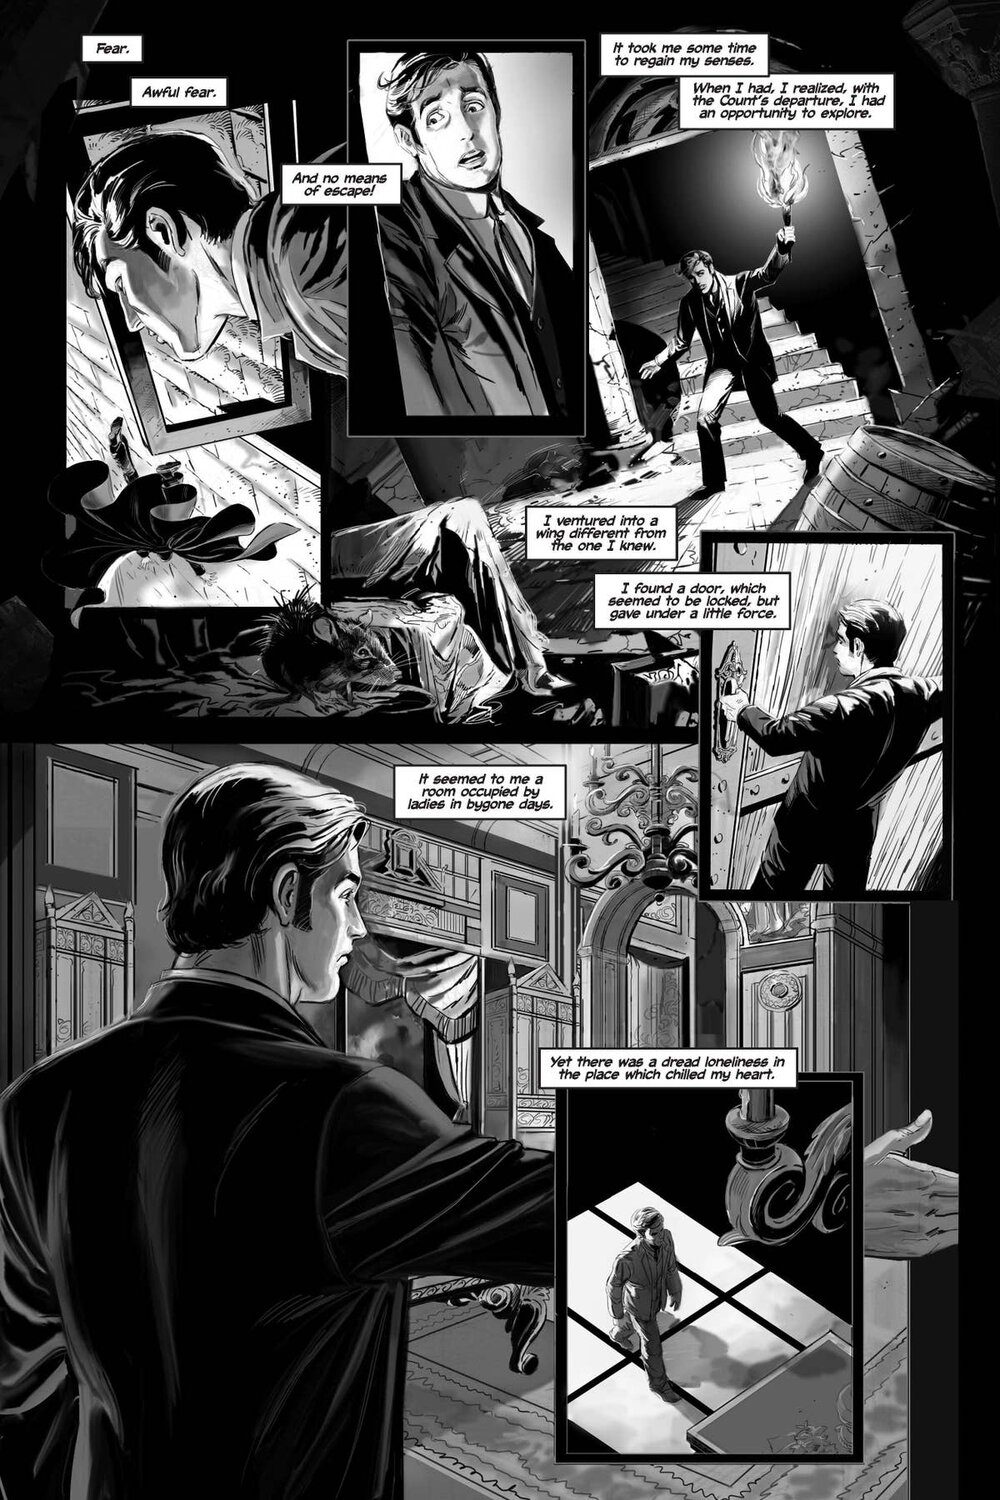 dracula-preview-page-2.jpg